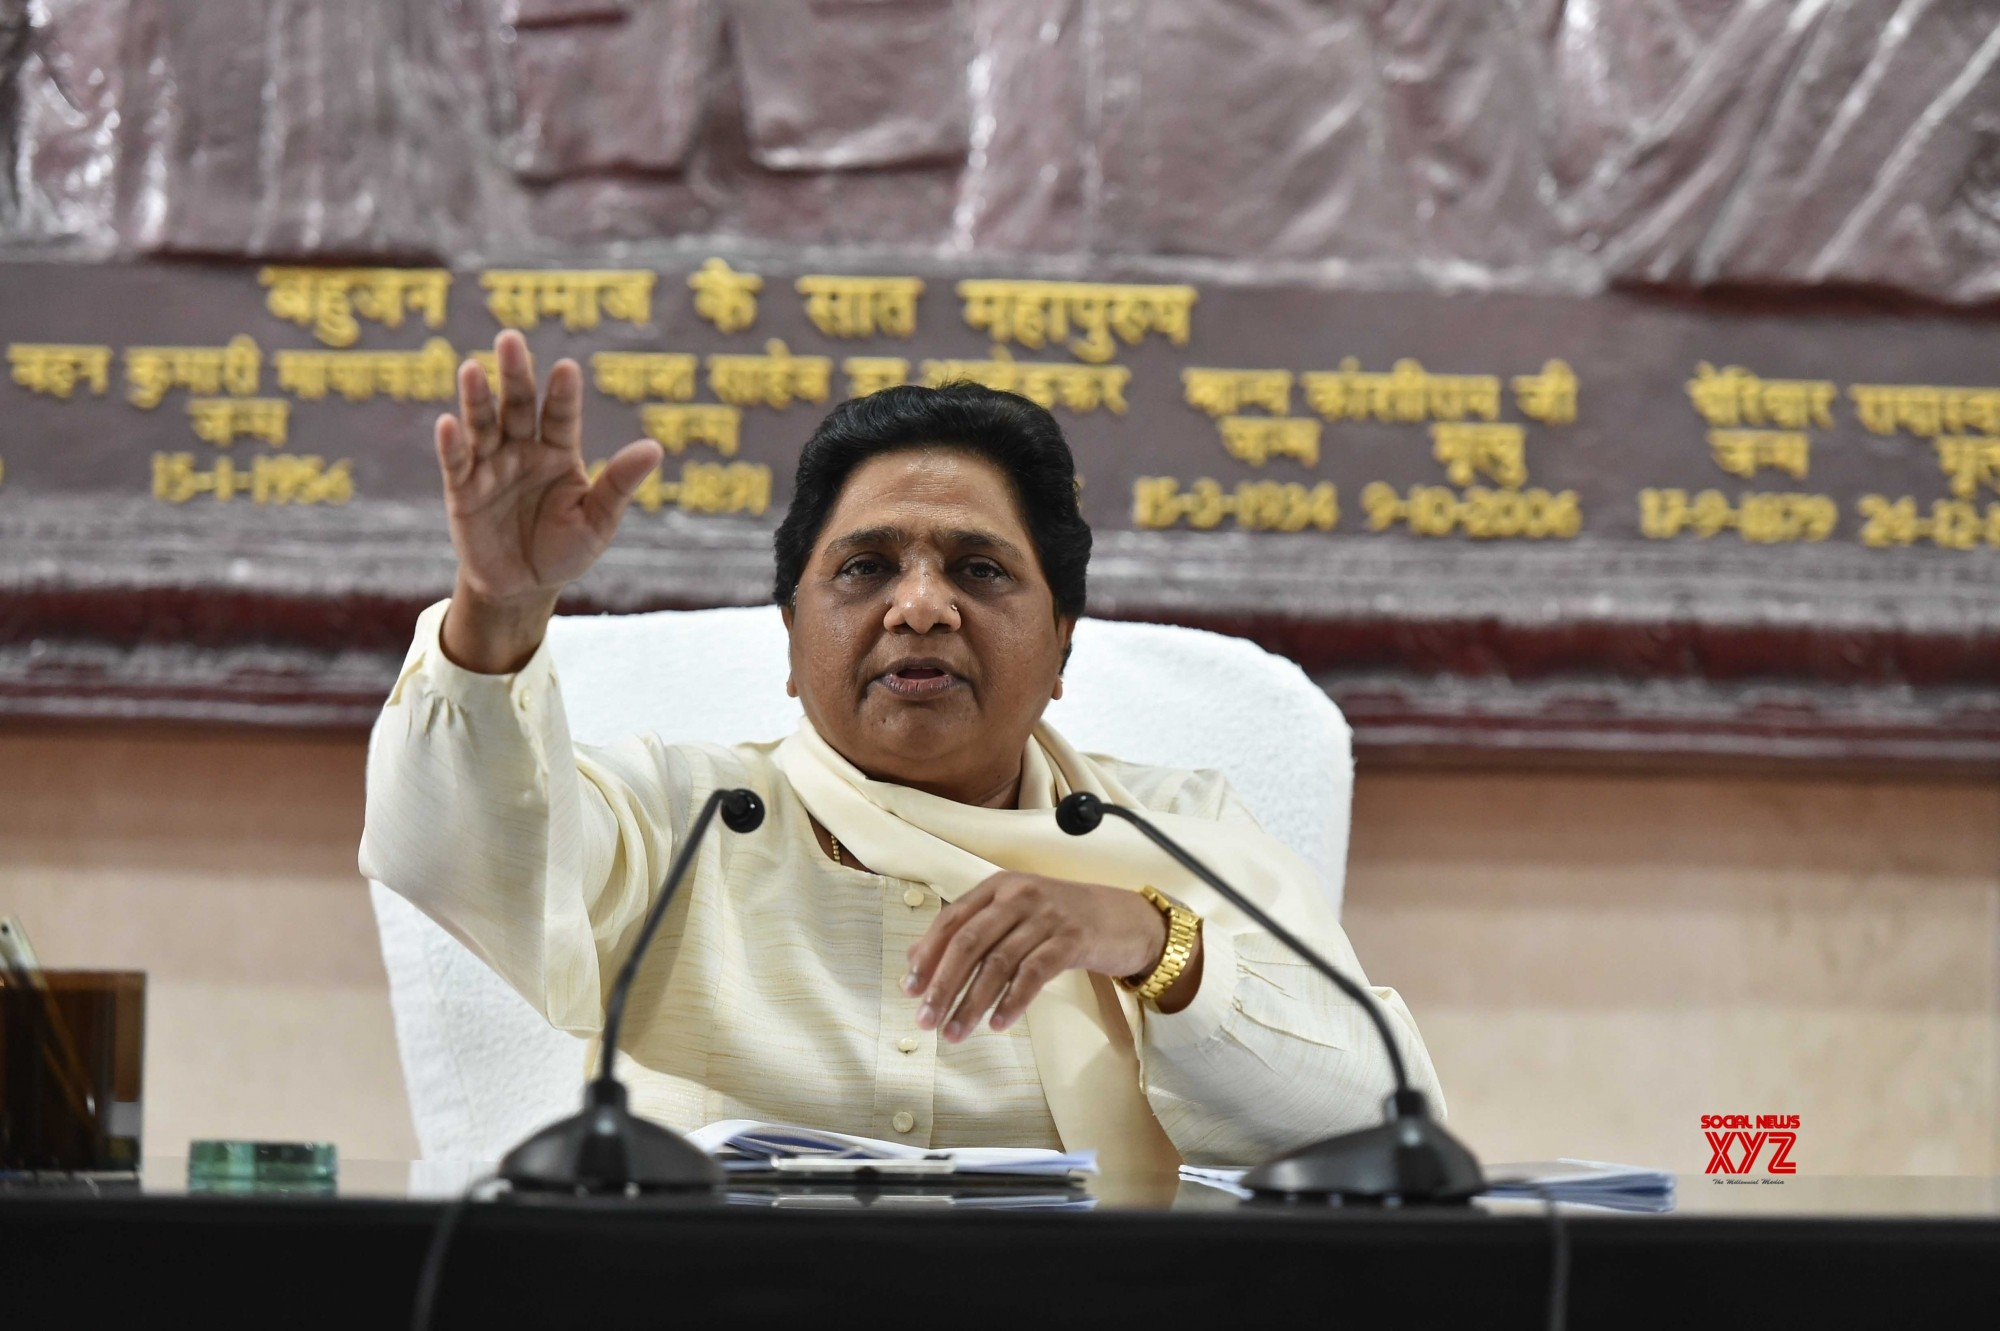 'Chowkidaar', not national security important for BJP: Mayawati